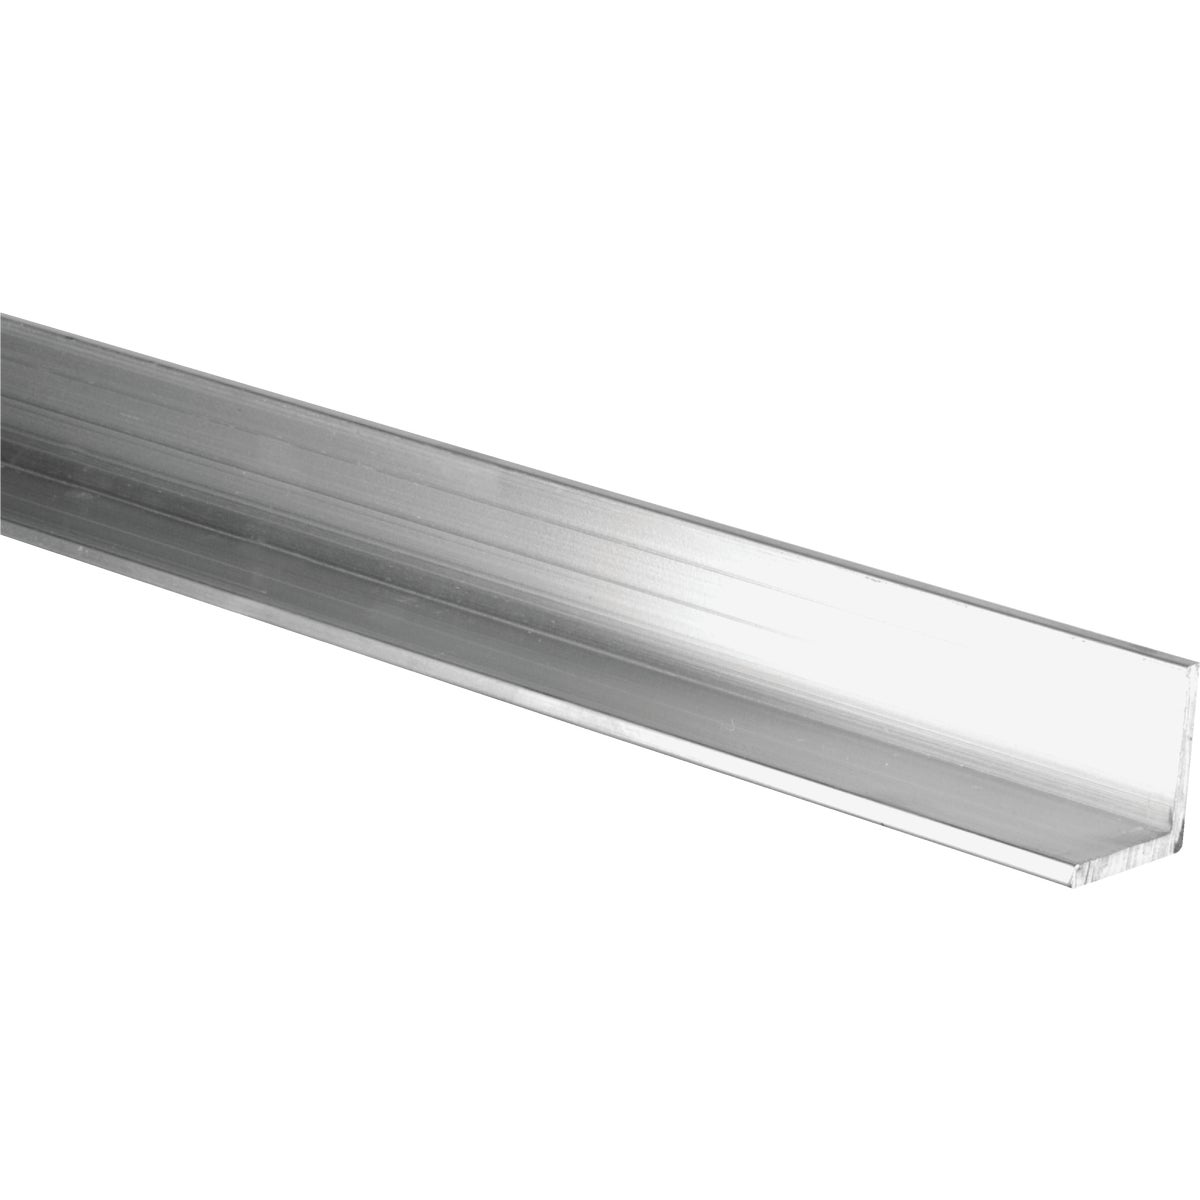 1/16X1X6' ALUM ANGLE - N247338 by National Mfg Co